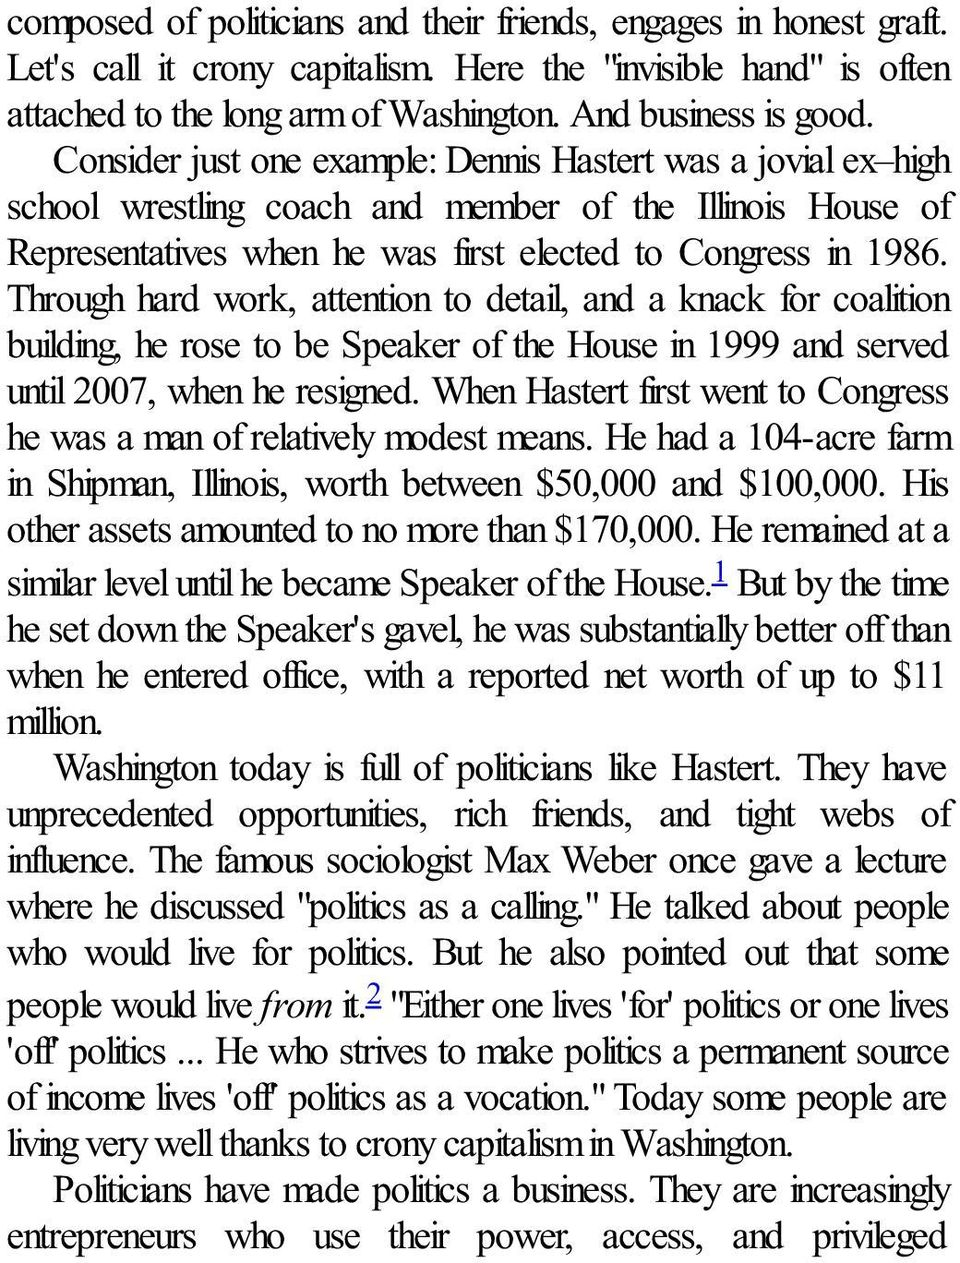 Through hard work, attention to detail, and a knack for coalition building, he rose to be Speaker of the House in 1999 and served until 2007, when he resigned.